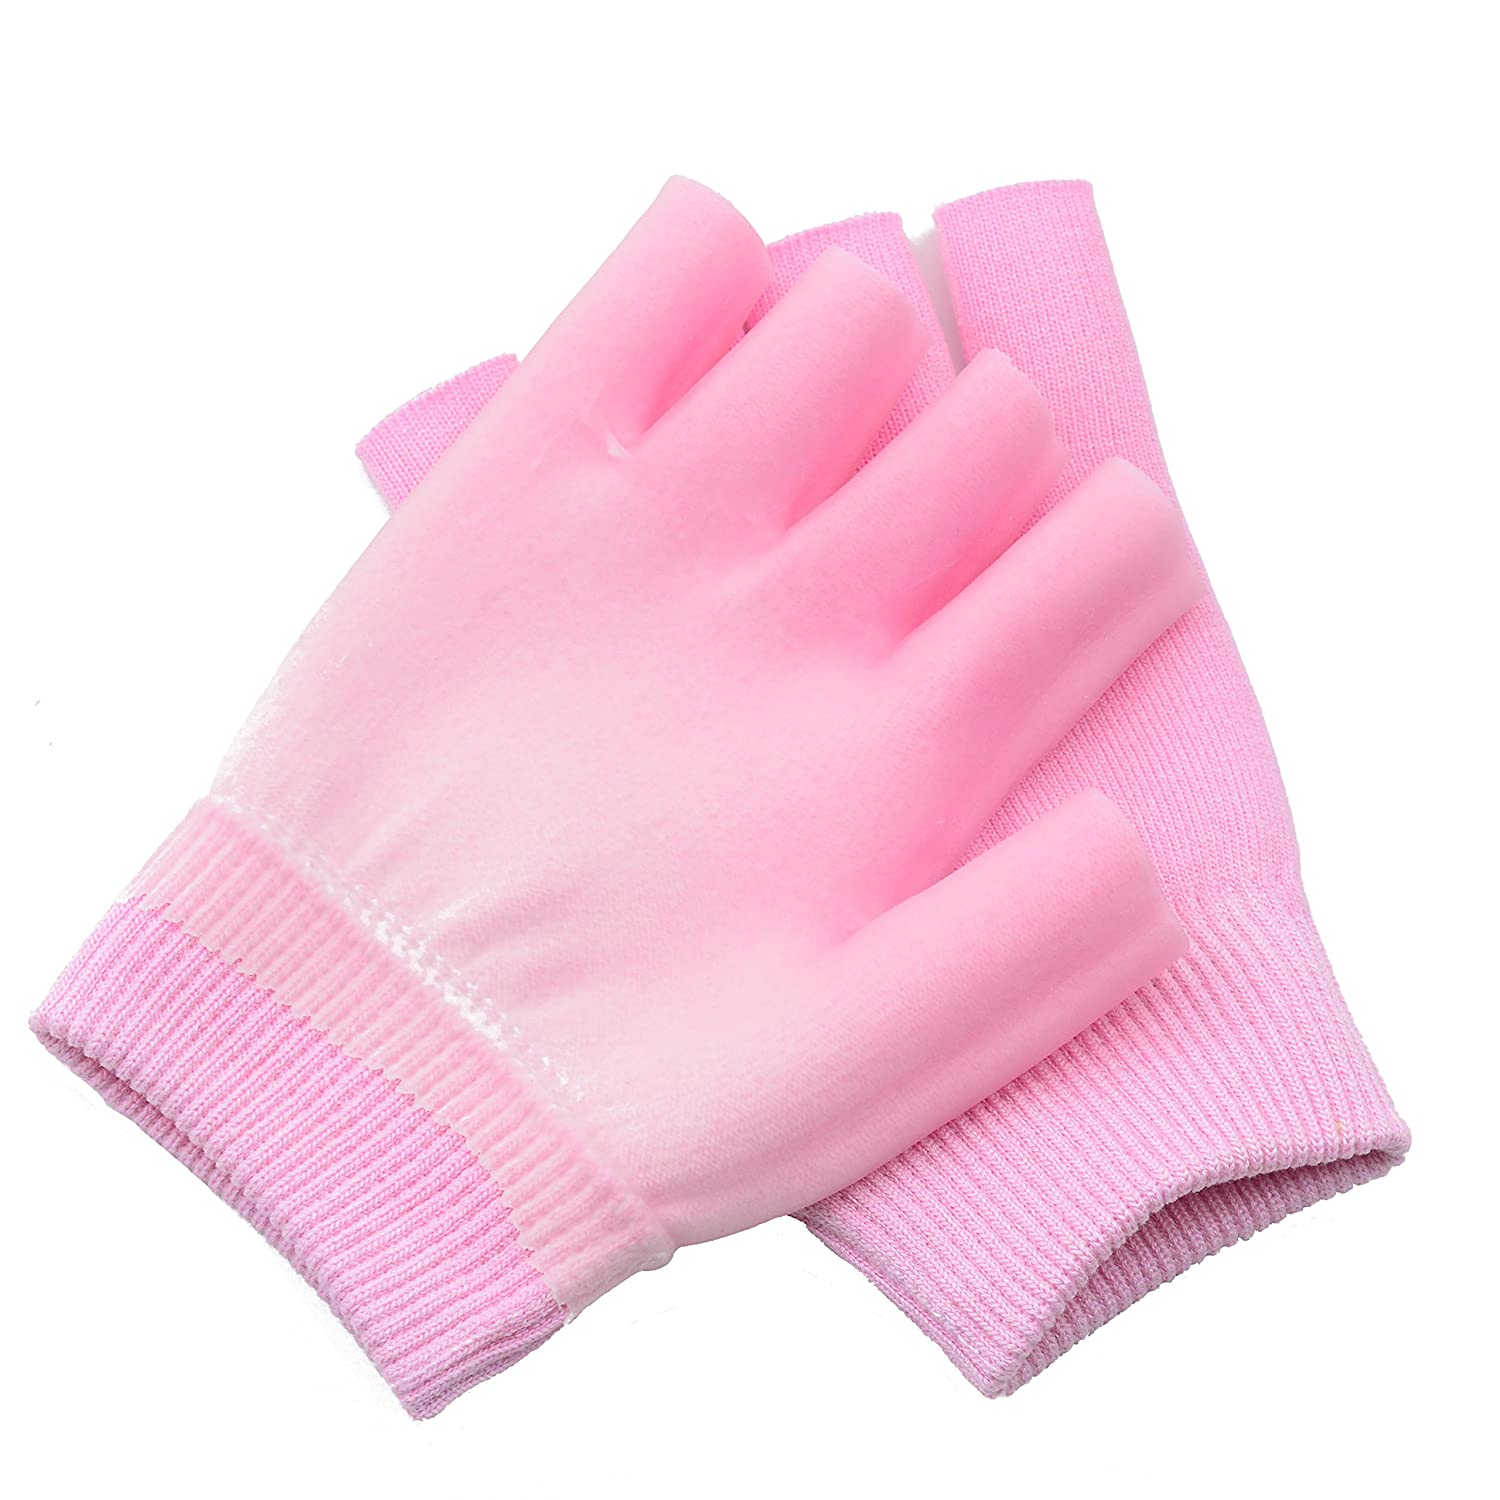 1 pair Moisturizing Spa Gloves Half Finger Touch Screen Gloves Gel Line with Essential Oils and Vitamin E (Pink) Makhry mk-glphalf01